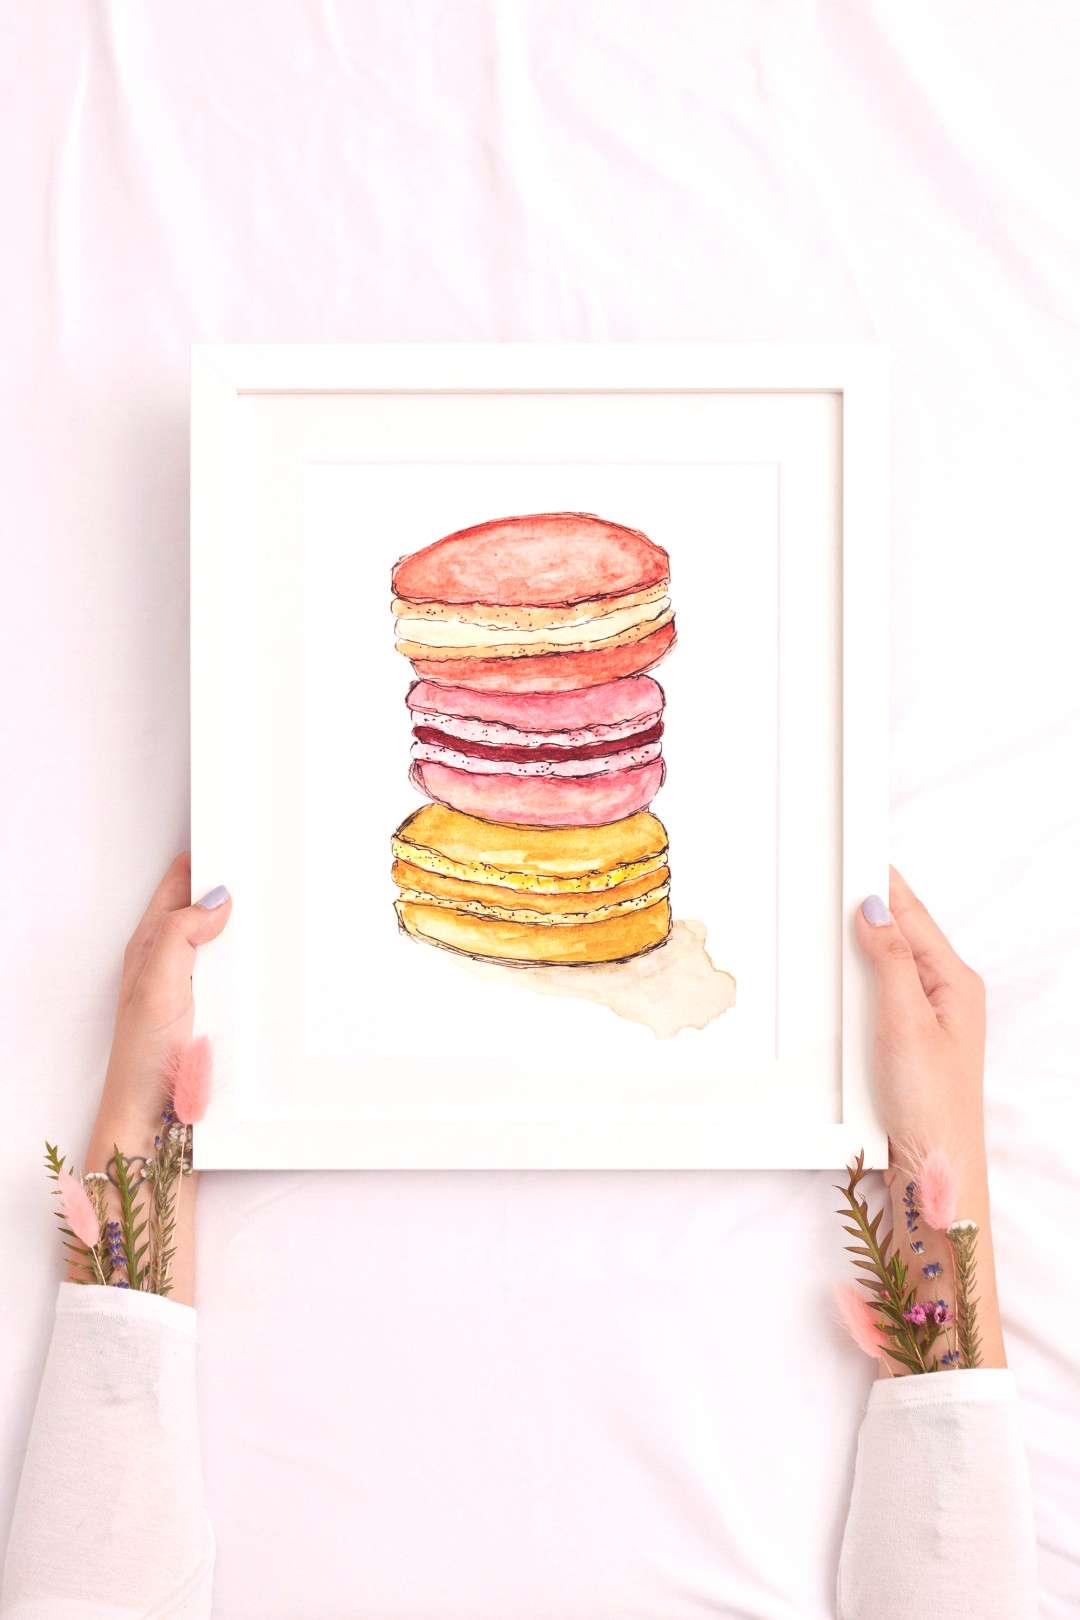 Excited to share this item from my shop Macaron Art, Food Art, Watercolor Macaron, Dessert Print,